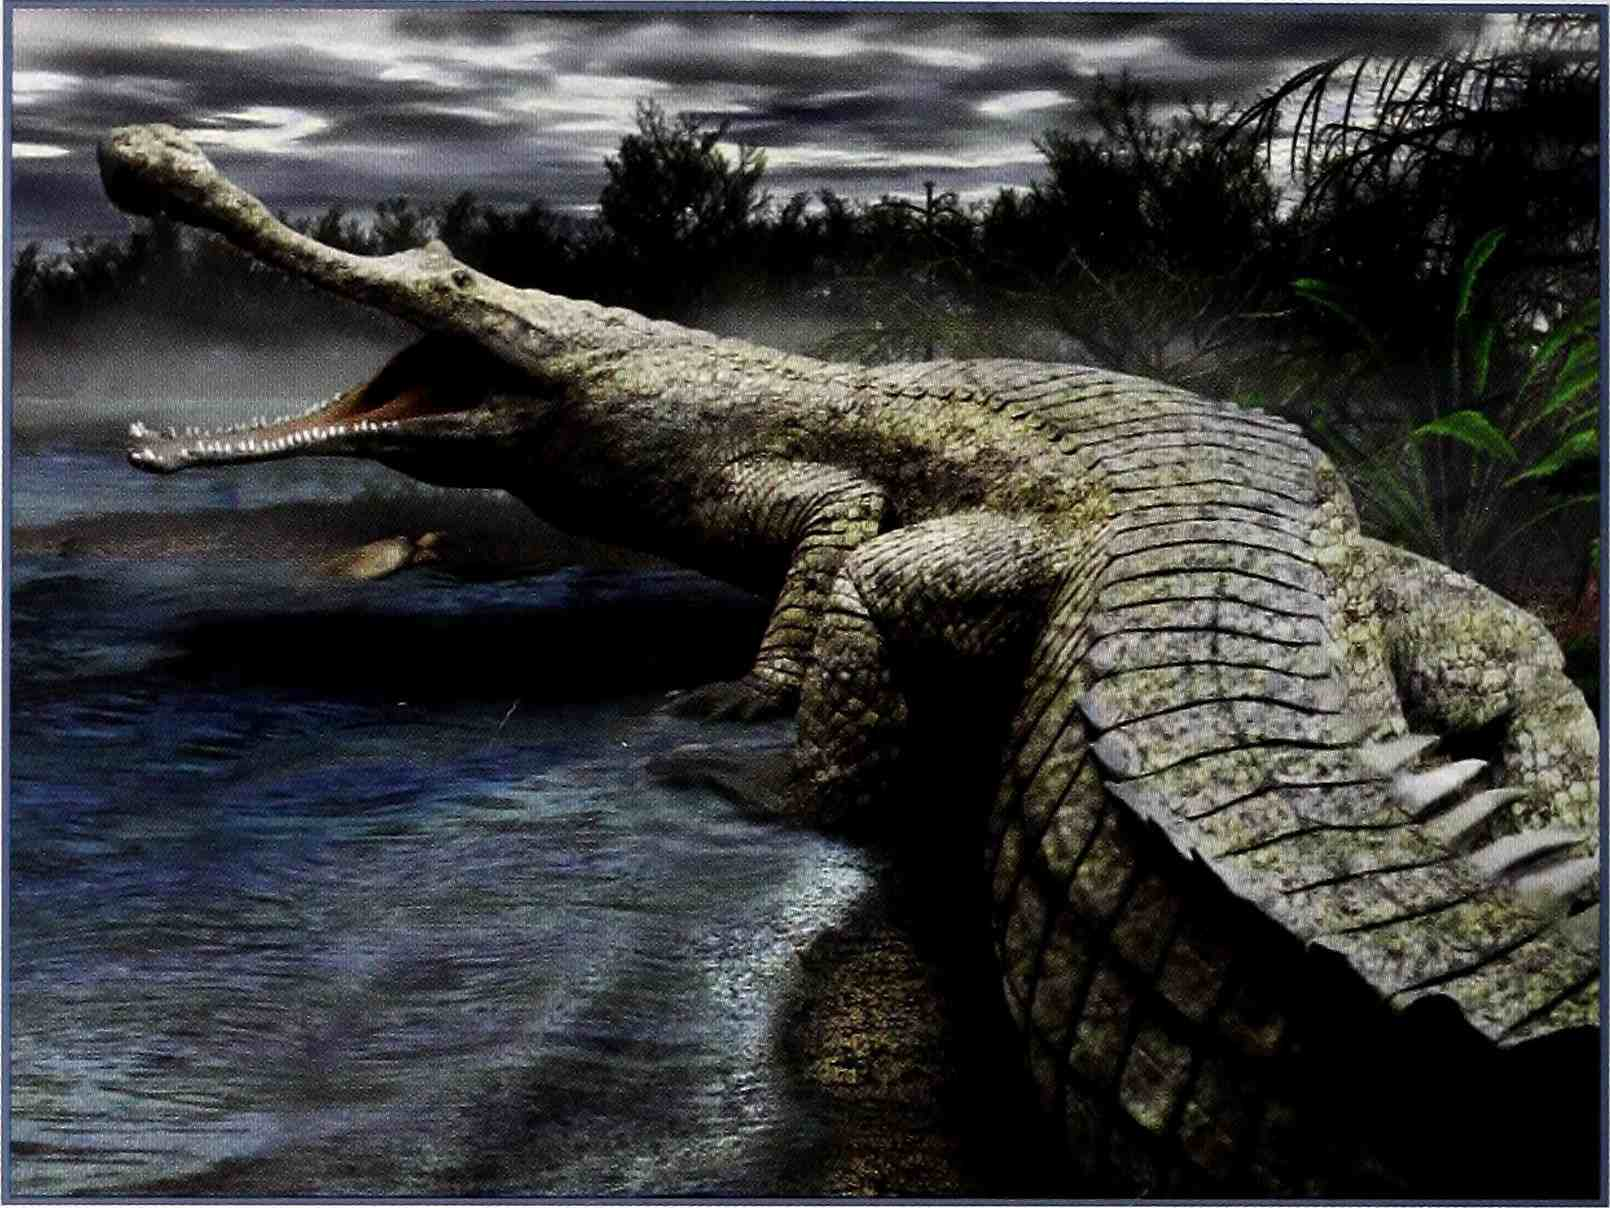 A digital image of a <i>Sarcosuchus</i> with a sheen of green moss on its reptilian skin